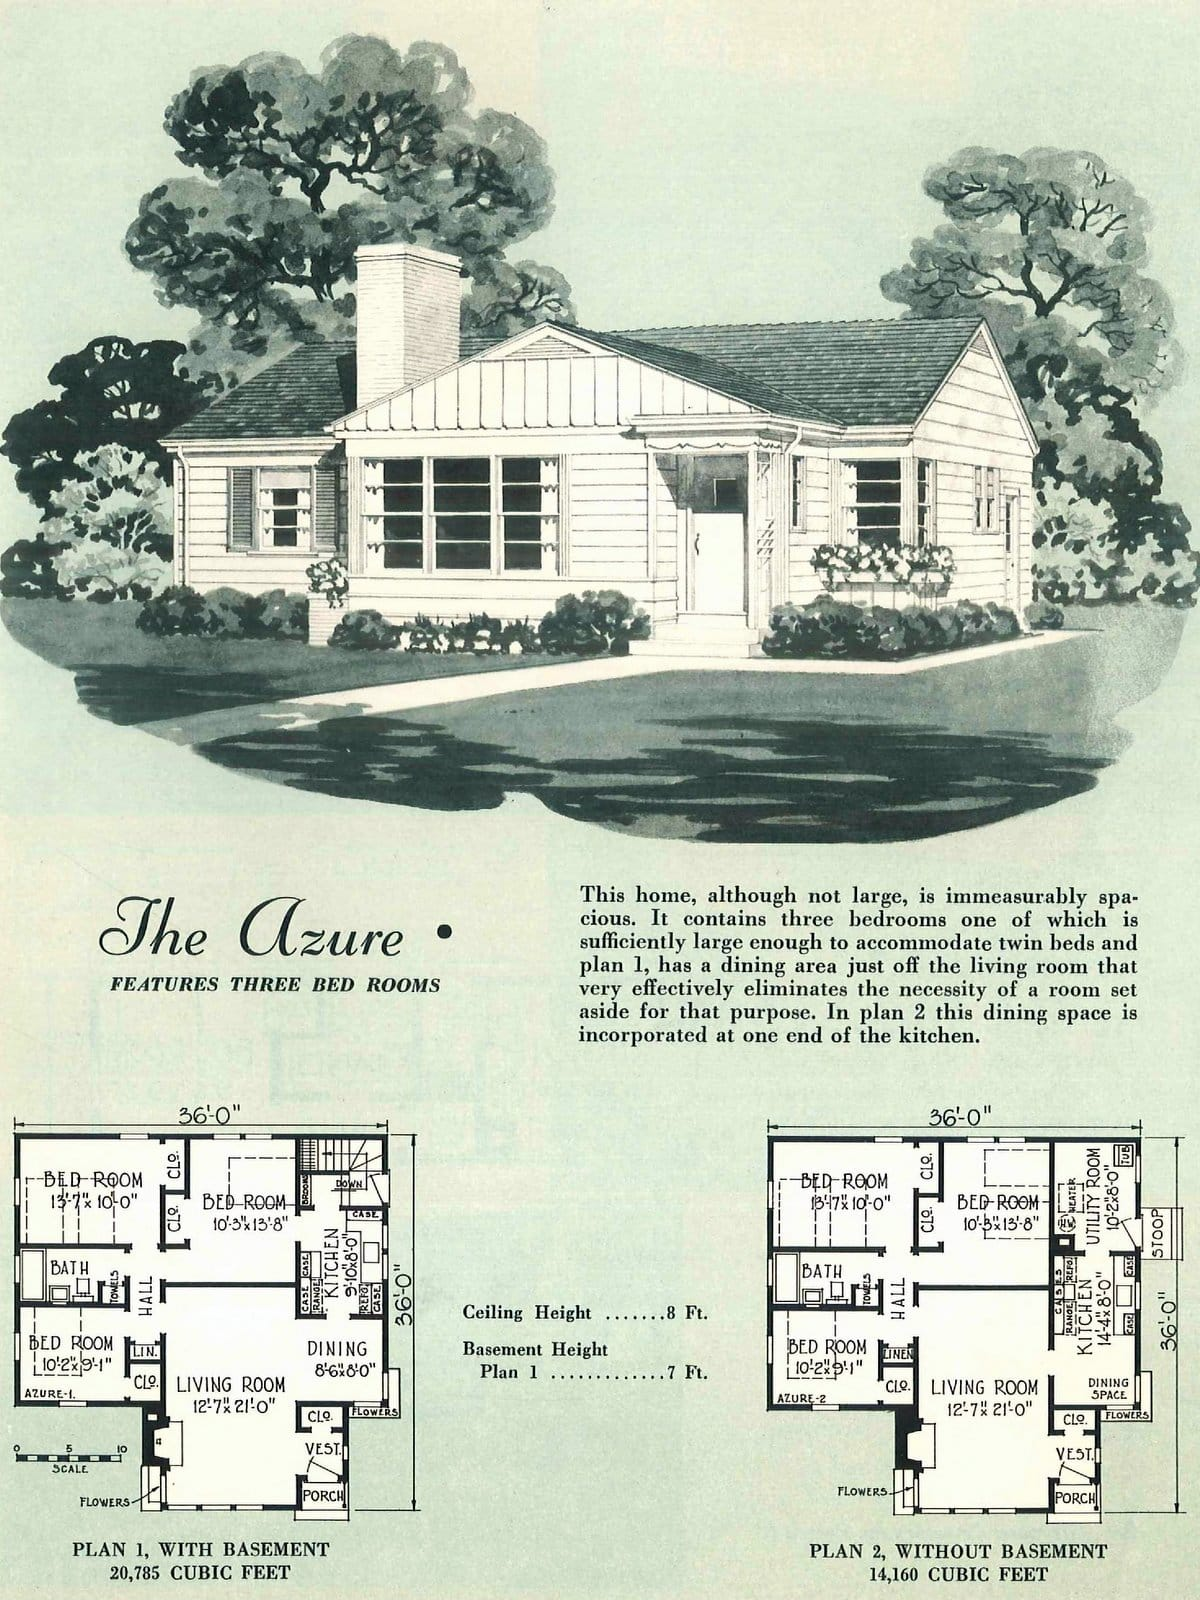 Vintage fifties small home plans from 1950 (3)